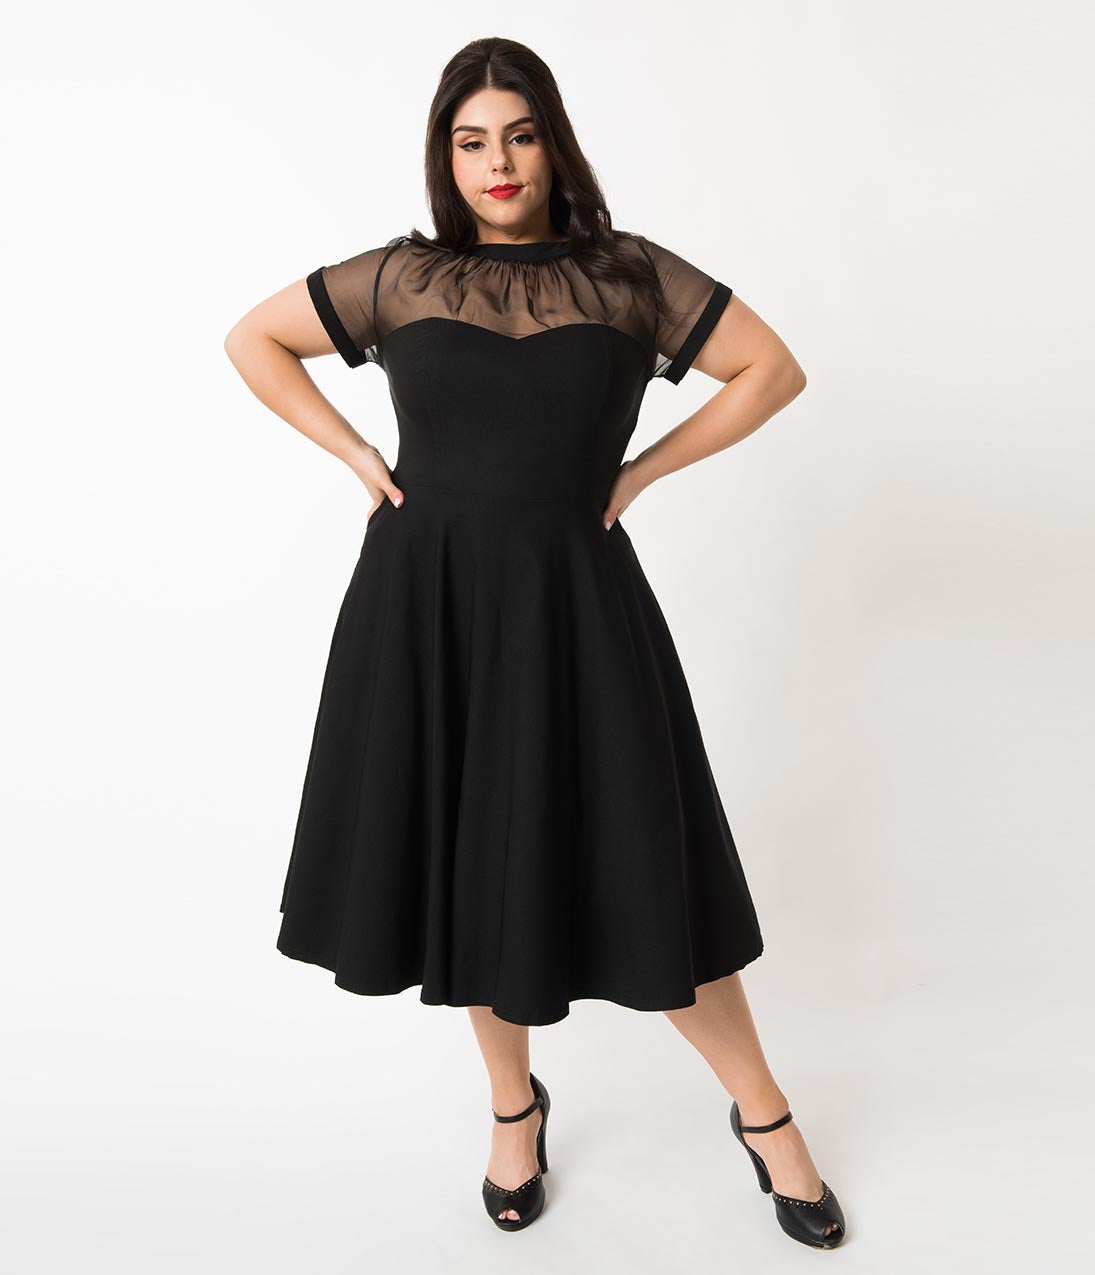 1950s Dresses, 50s Dresses | 1950s Style Dresses Unique Vintage Plus Size 1950S Black Stretch Sheer Bodice Shirelle Swing Dress $78.00 AT vintagedancer.com